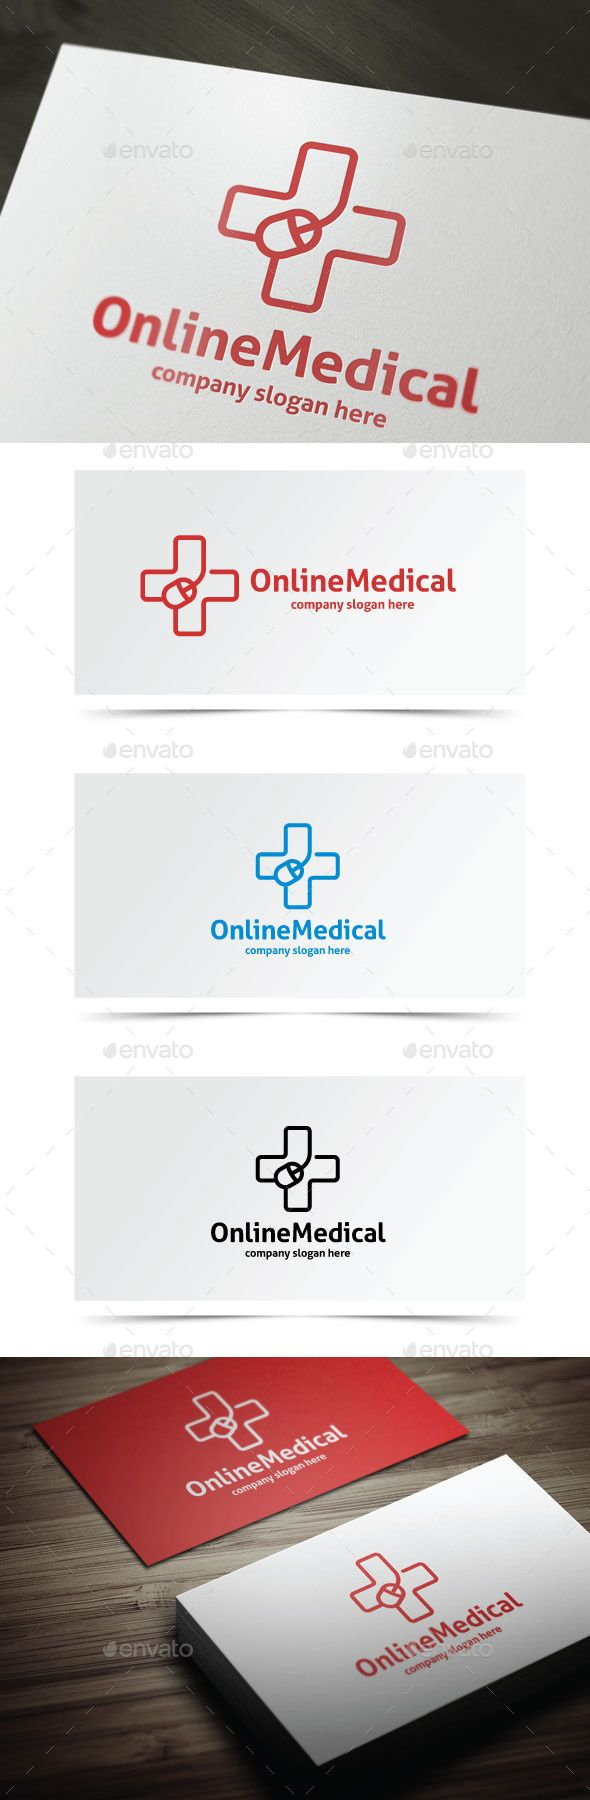 Online Medical — Photoshop PSD #computer #hospice • Available here → https://graphicriver.net/item/online-medical/10638048?ref=pxcr